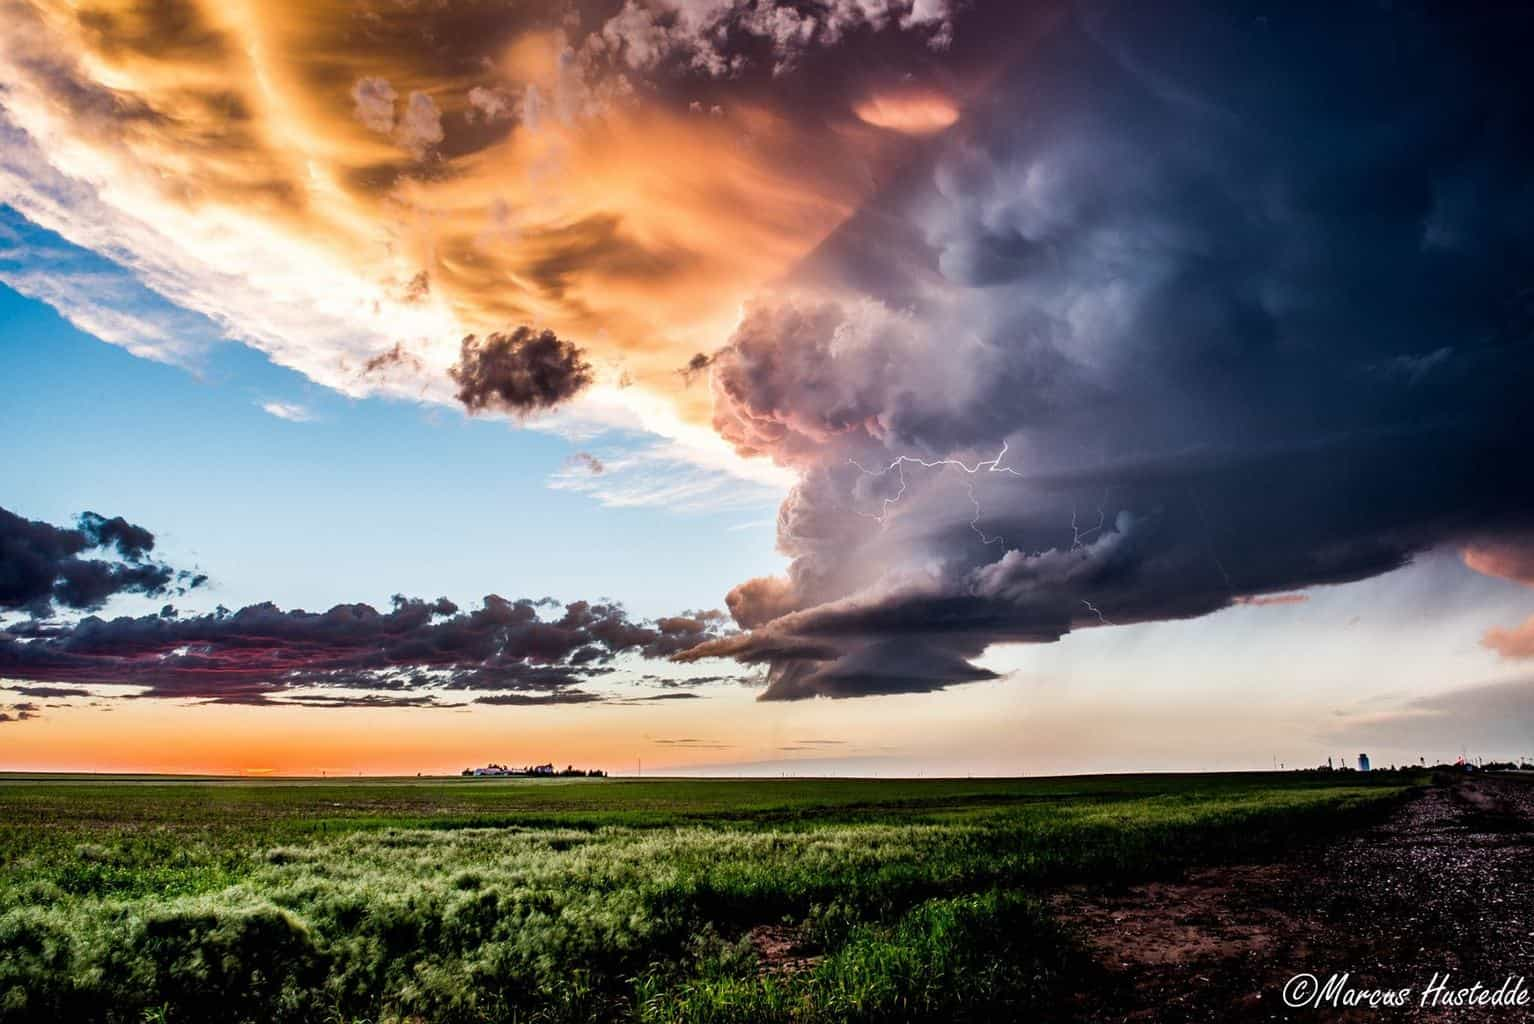 LP storm in western Nebraska this past June as a dynamic sunset develops....this was by far the best sunset I have seen in 2015.